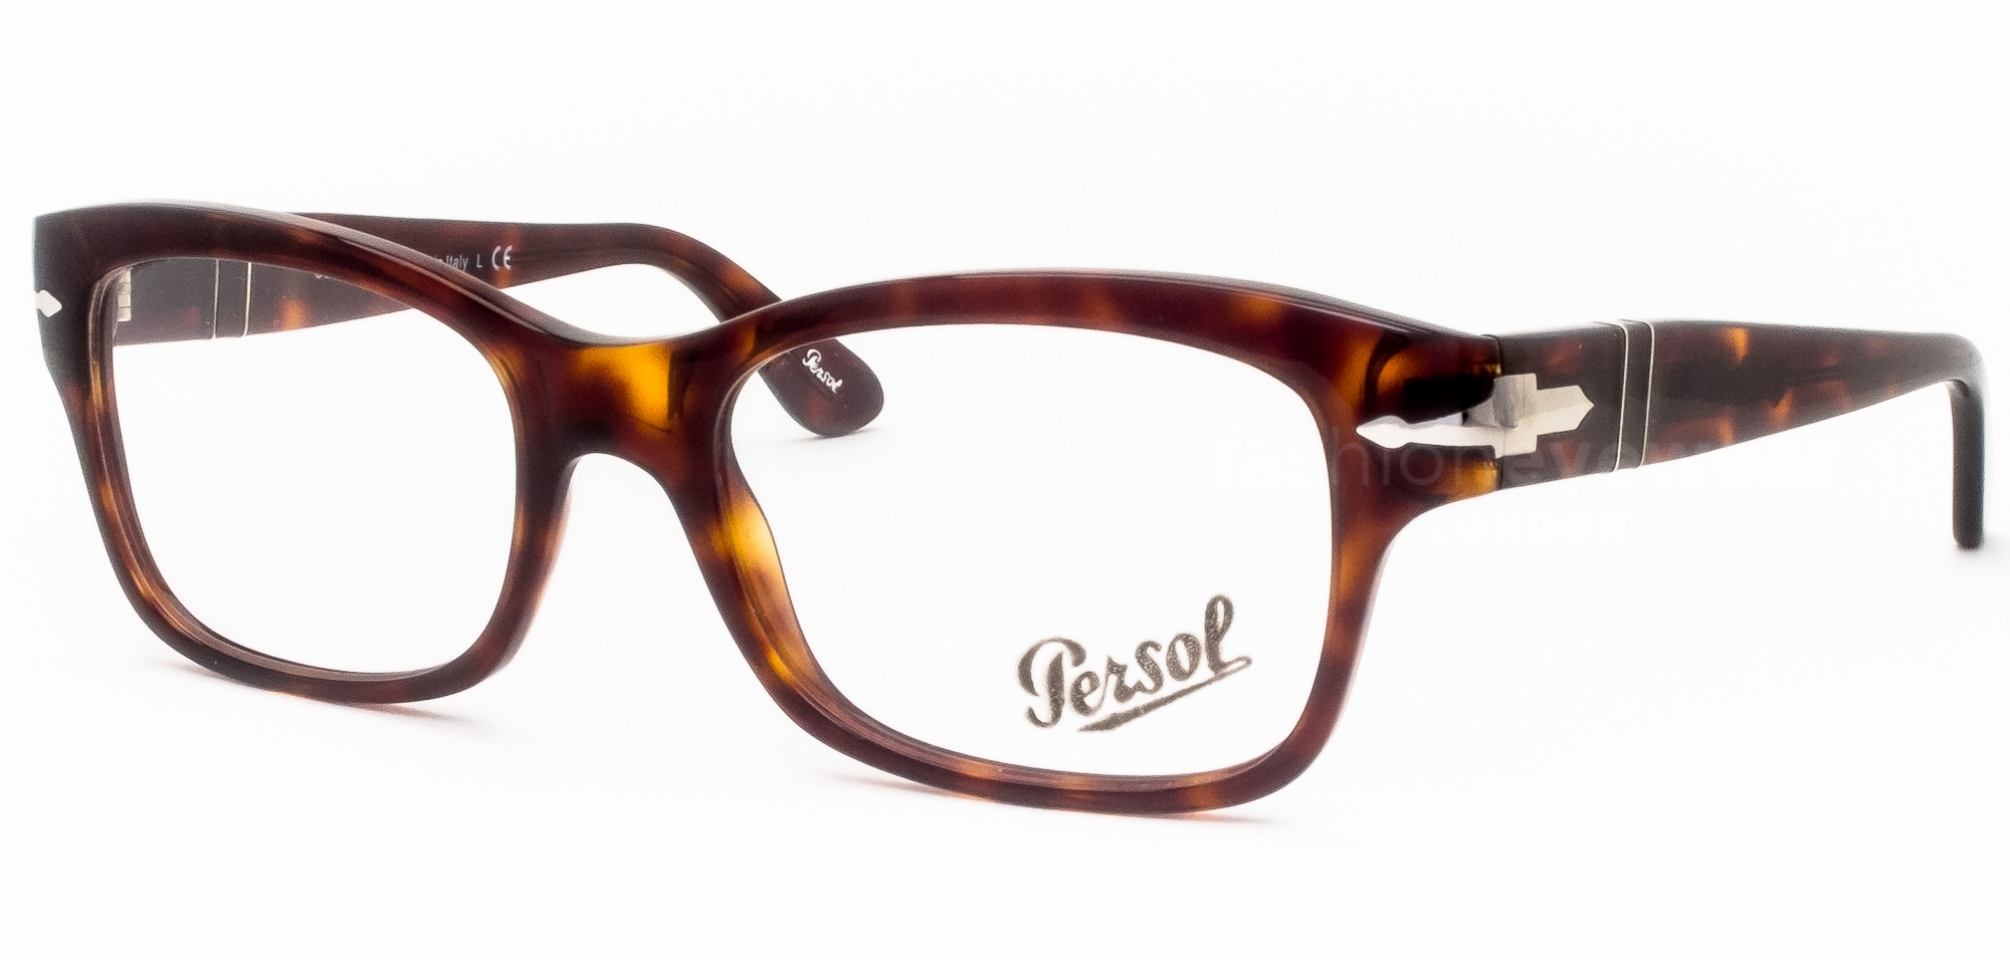 b864631567 Buy Persol Eyeglasses directly from OpticsFast.com